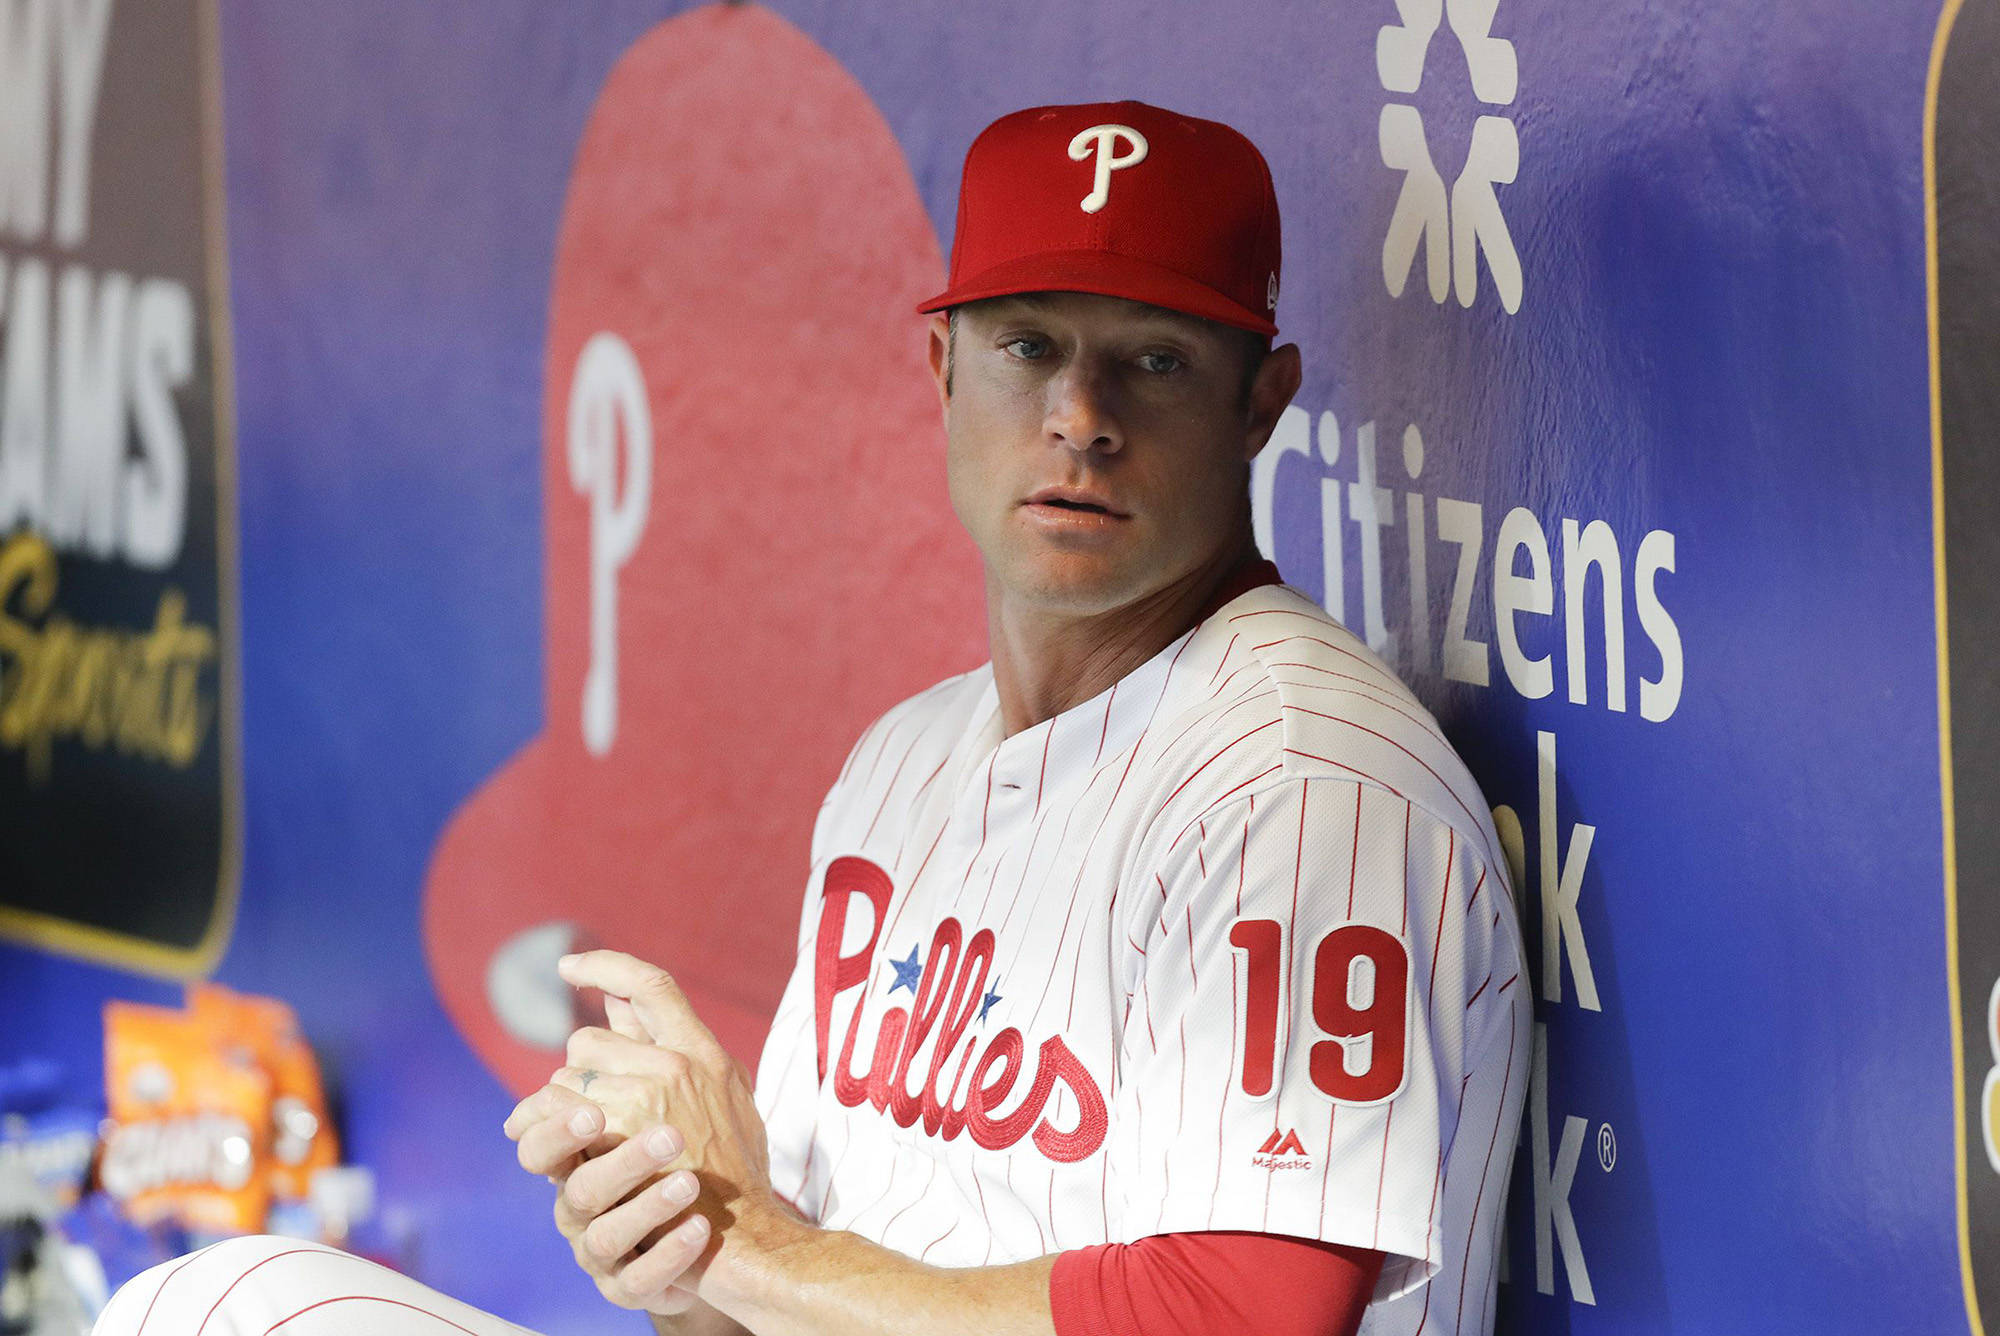 Philadelphia Phillies manager Gabe Kapler before the Phillies played the Miami Marlins on Sept. 27, 2019. (Yong Kim/The Philadelphia Inquirer/TNS)